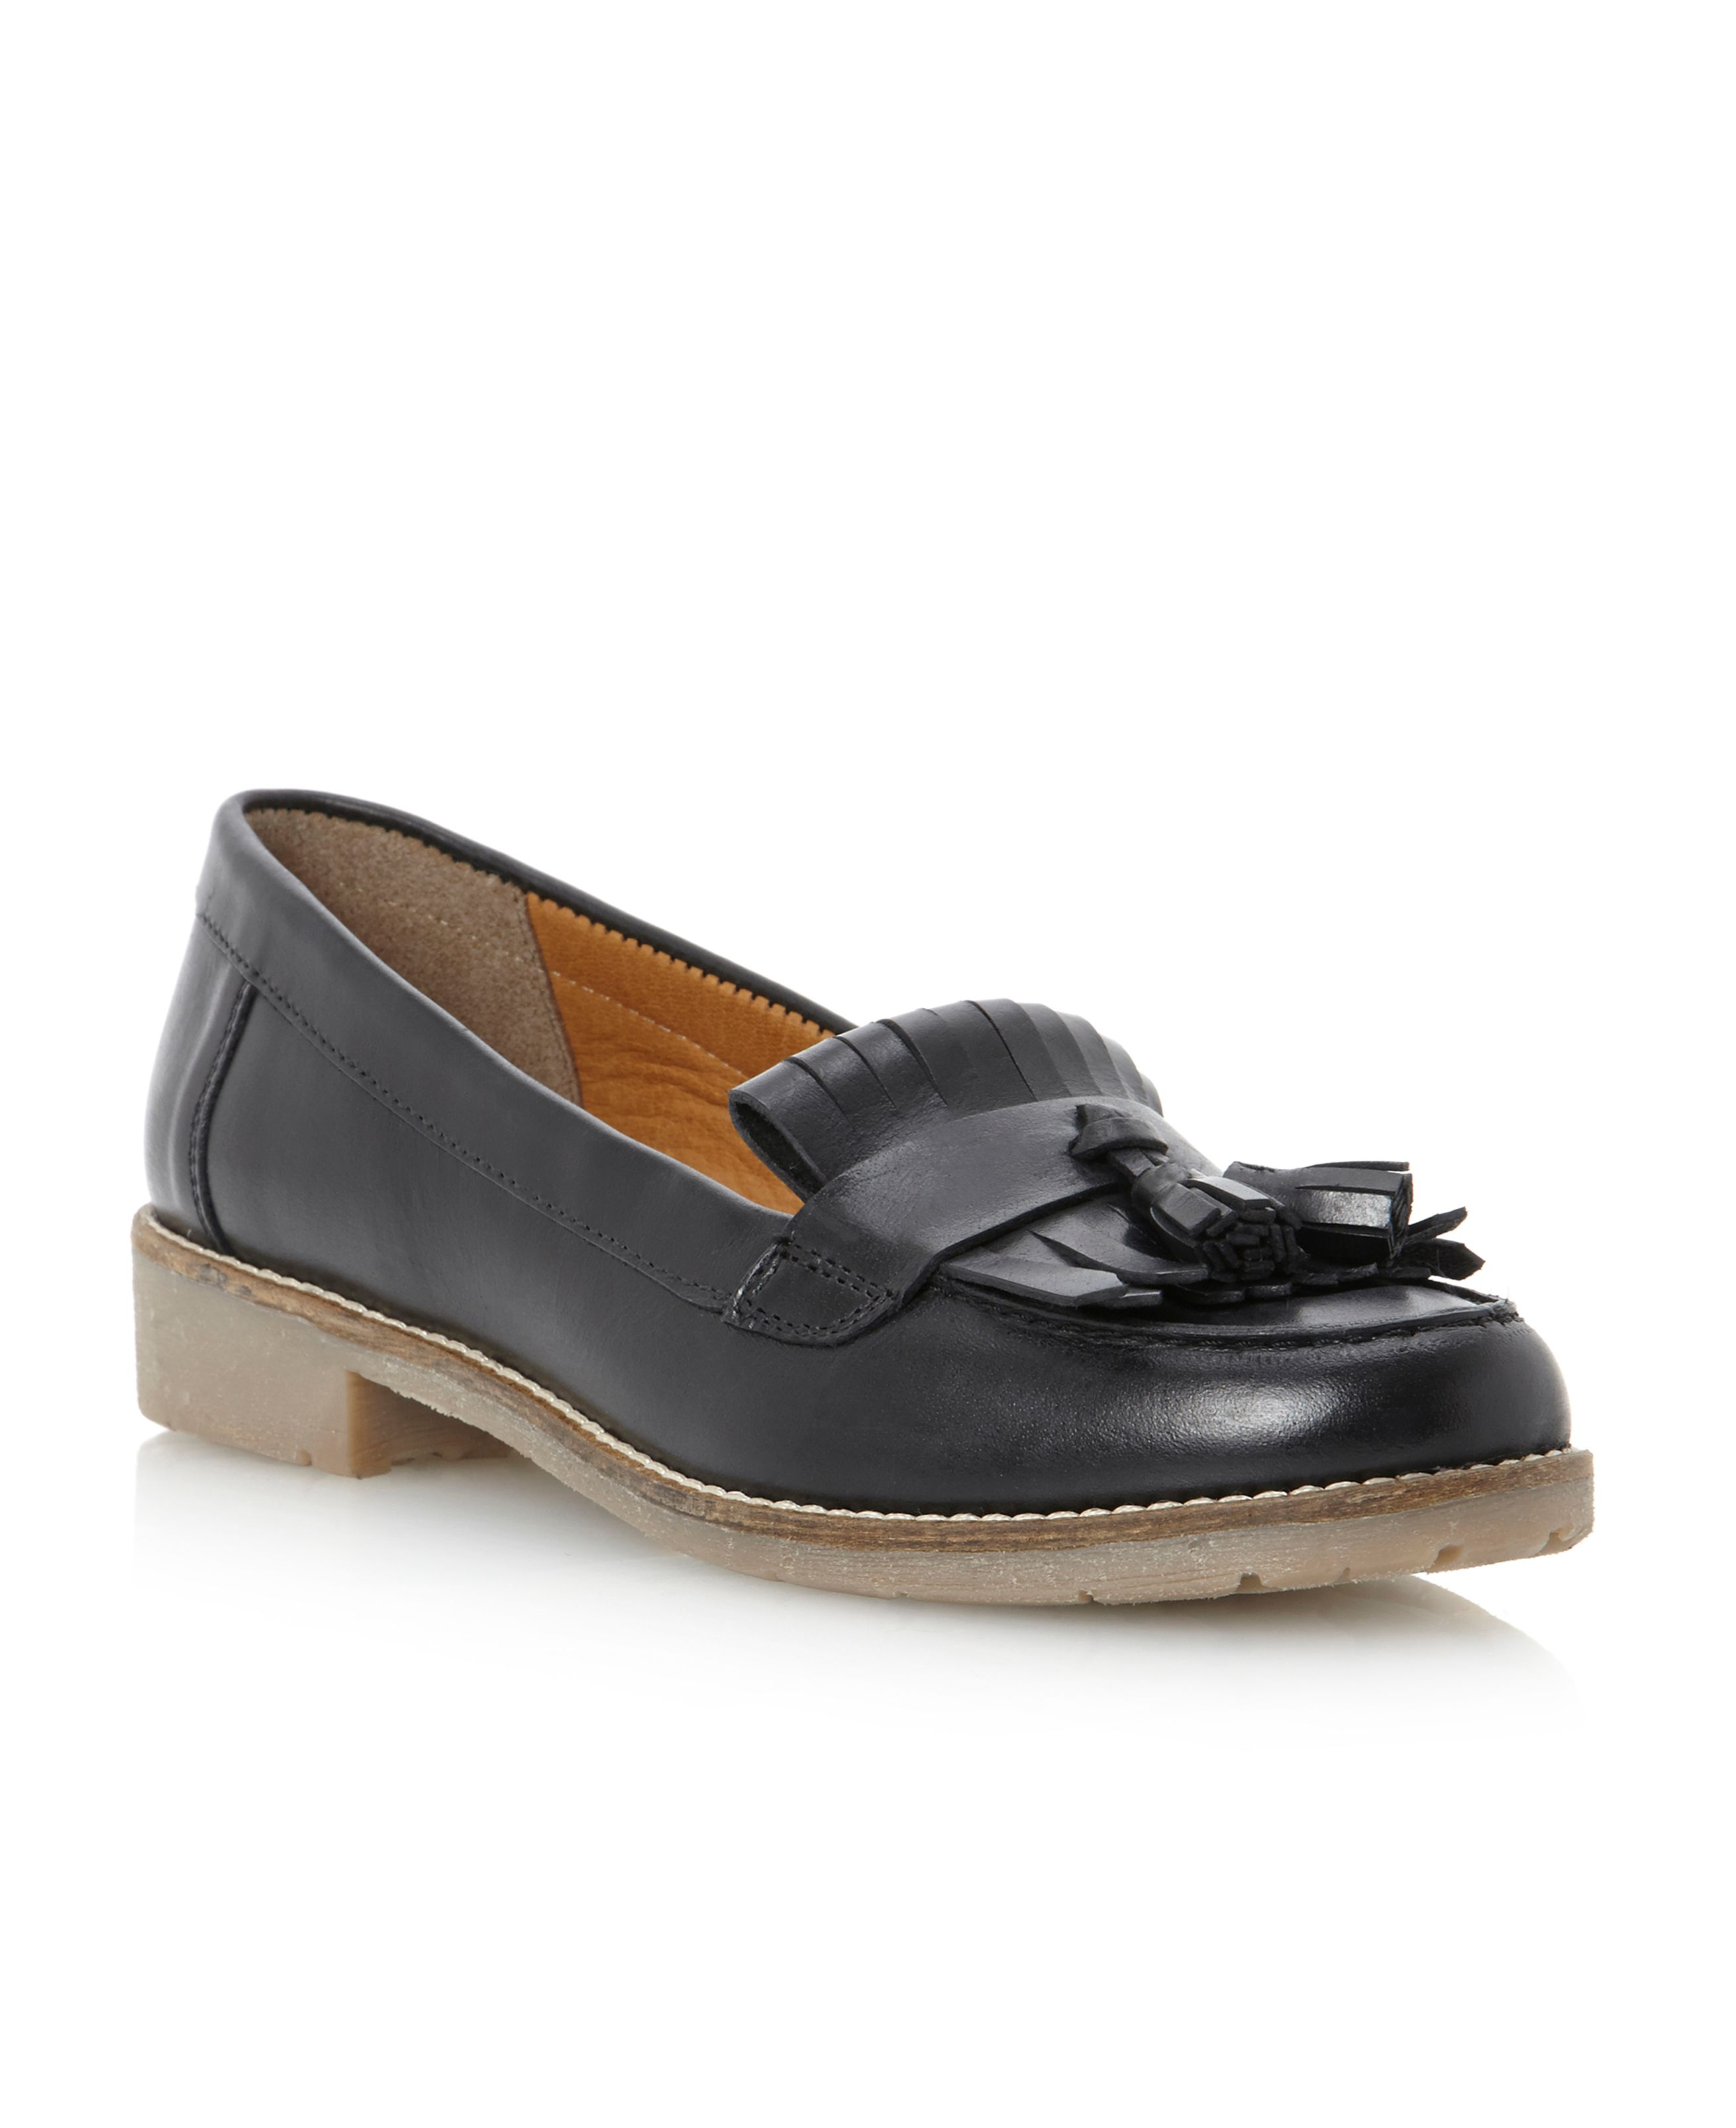 Libertie-crepe sole tassel loafer shoes